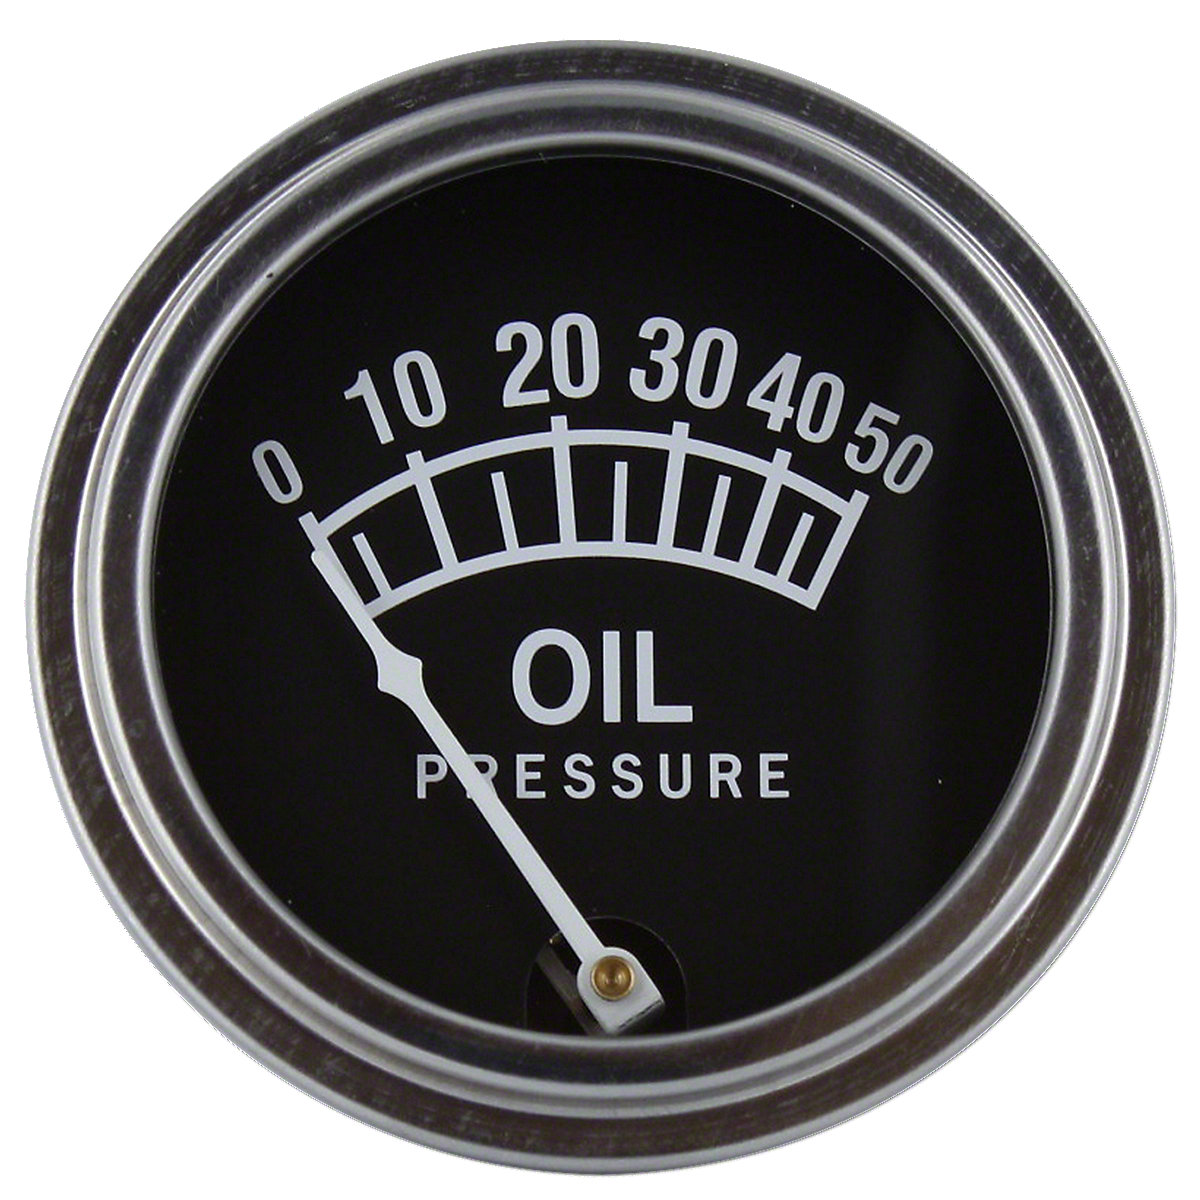 0-50 PSI Oil Pressure Gauge For Massey Ferguson: Super 90, 35, 50, 65, 85, 88, 135, 150, 165, 202, 204, 406, 2135, 2200, 2500, 3165, 95, 97, F40, TE20, TEA20-85, TO20, TO30, TO35, Massey Harris: Colt 21, Mustang 23, Pacer 16, Pony, 101 jr, 101 sr, 102 jr,